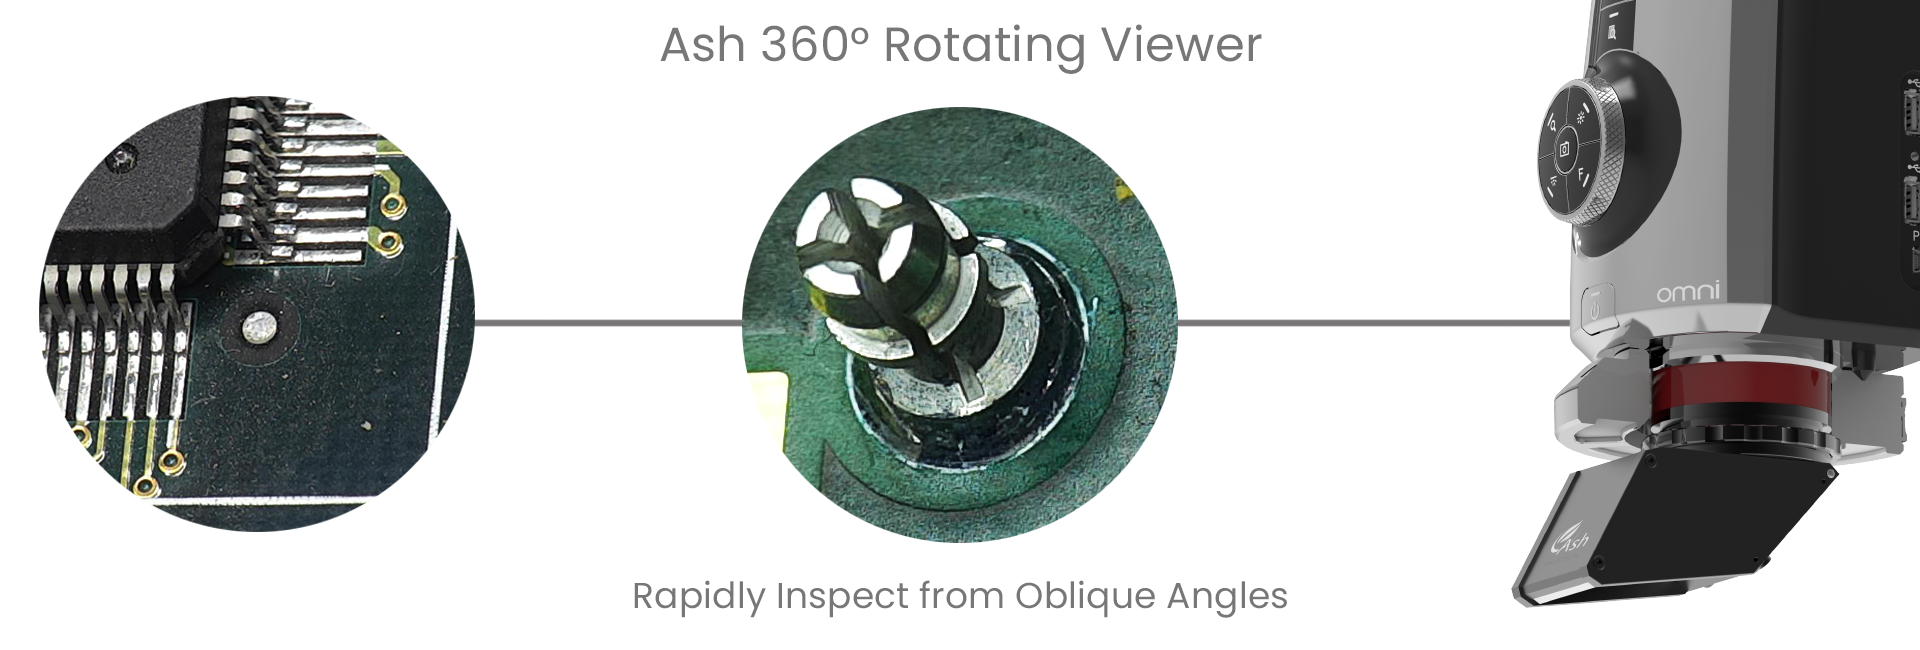 ash-360-rotating-viewer